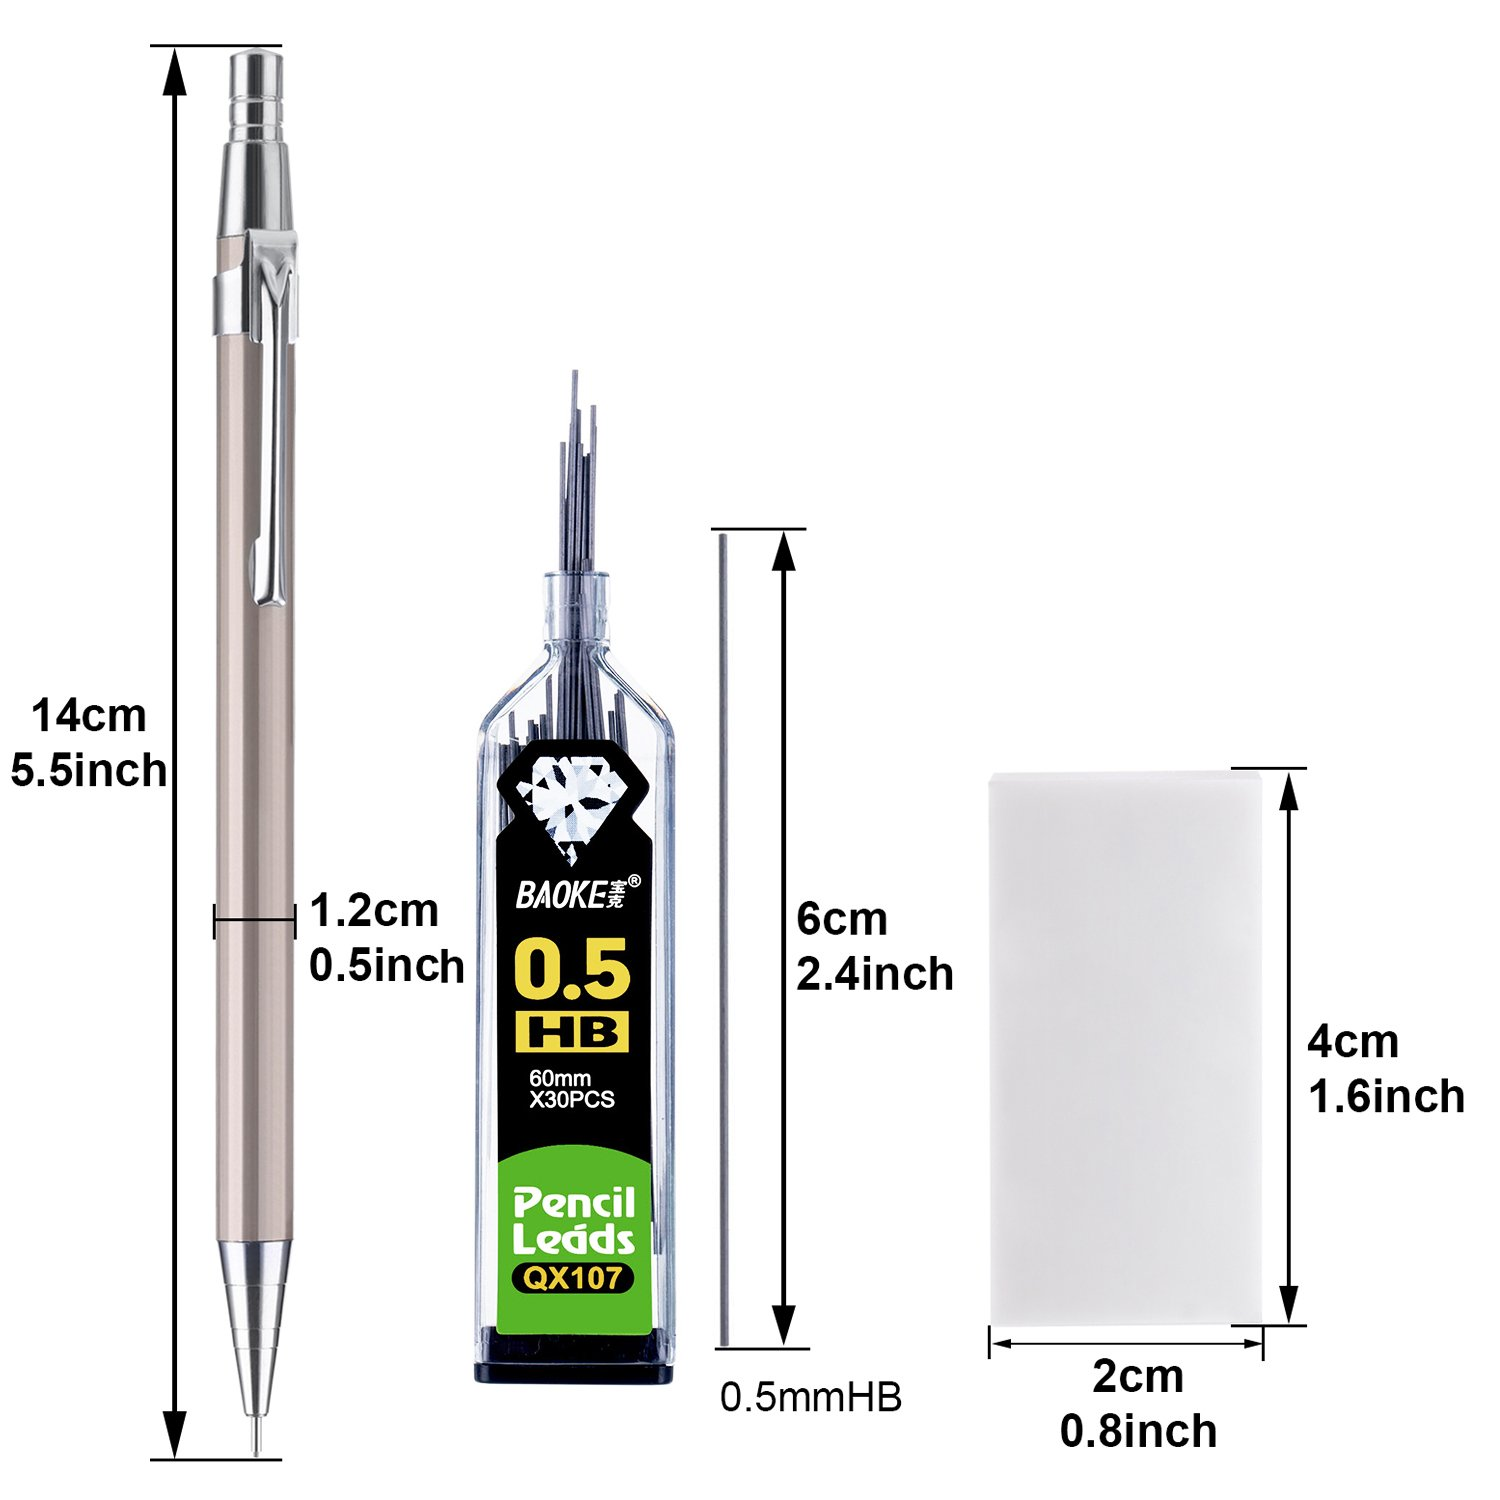 15 Pieces Mechanical Pencil Set 0.7 mm 6 Pieces Mechanical Pencils and 6 Tubes Lead Refills with 3 Pack Erasers for Office and School Assorted Colors